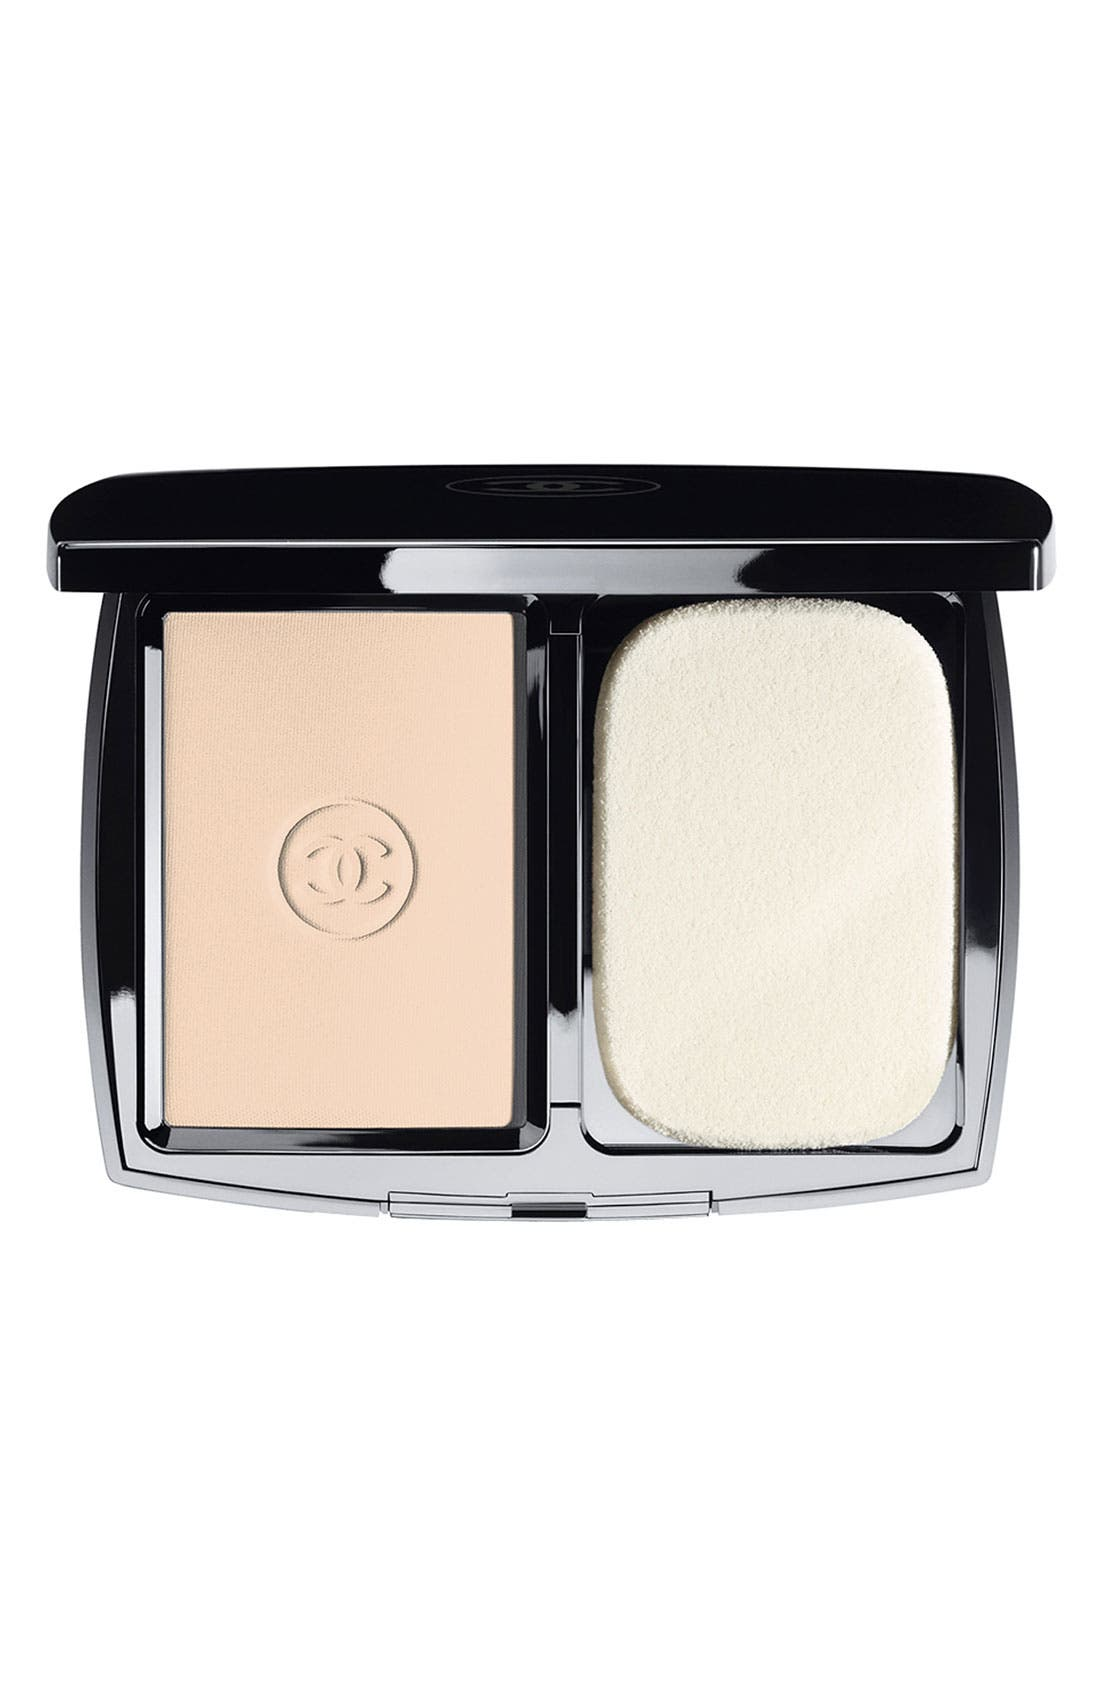 DOUBLE PERFECTION LUMIÈRE<br />Long-Wear Flawless Sunscreen Powder Makeup Broad Spectrum SPF 15,                             Main thumbnail 2, color,